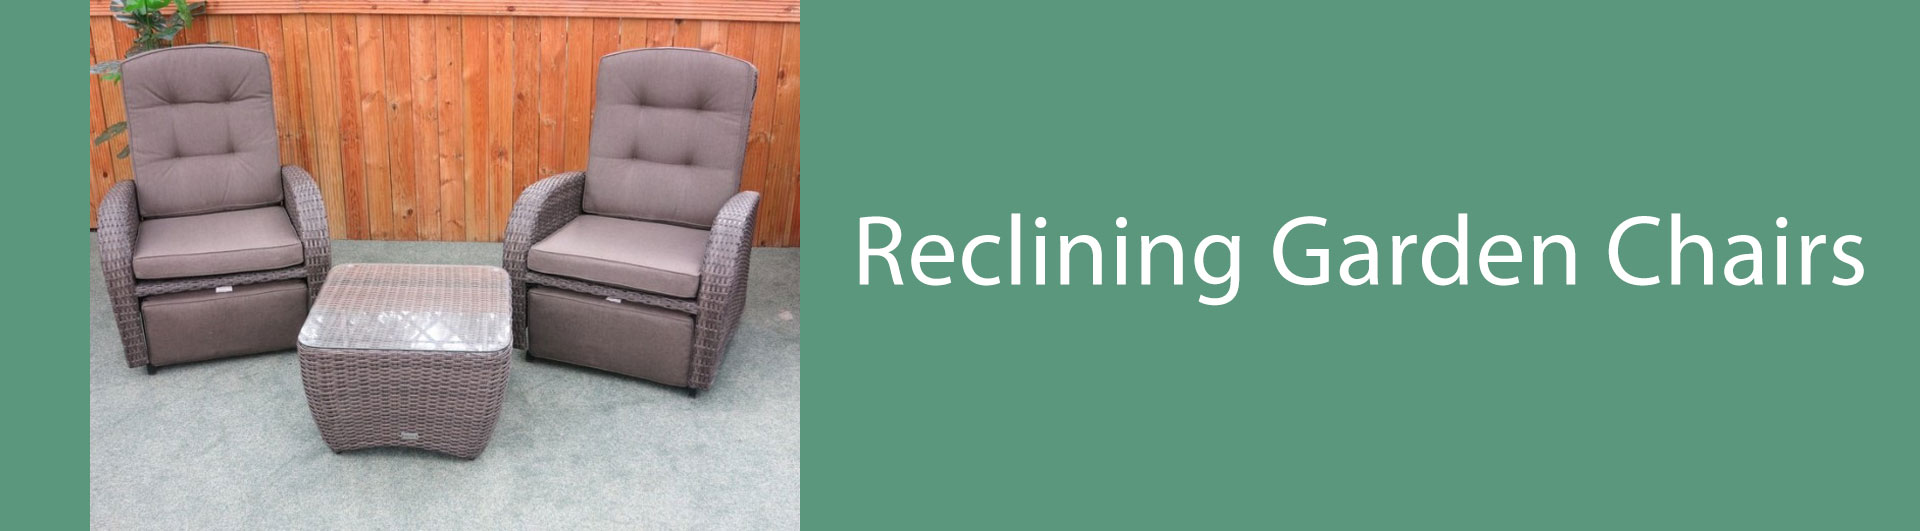 Shop our range of reclining garden chairs now